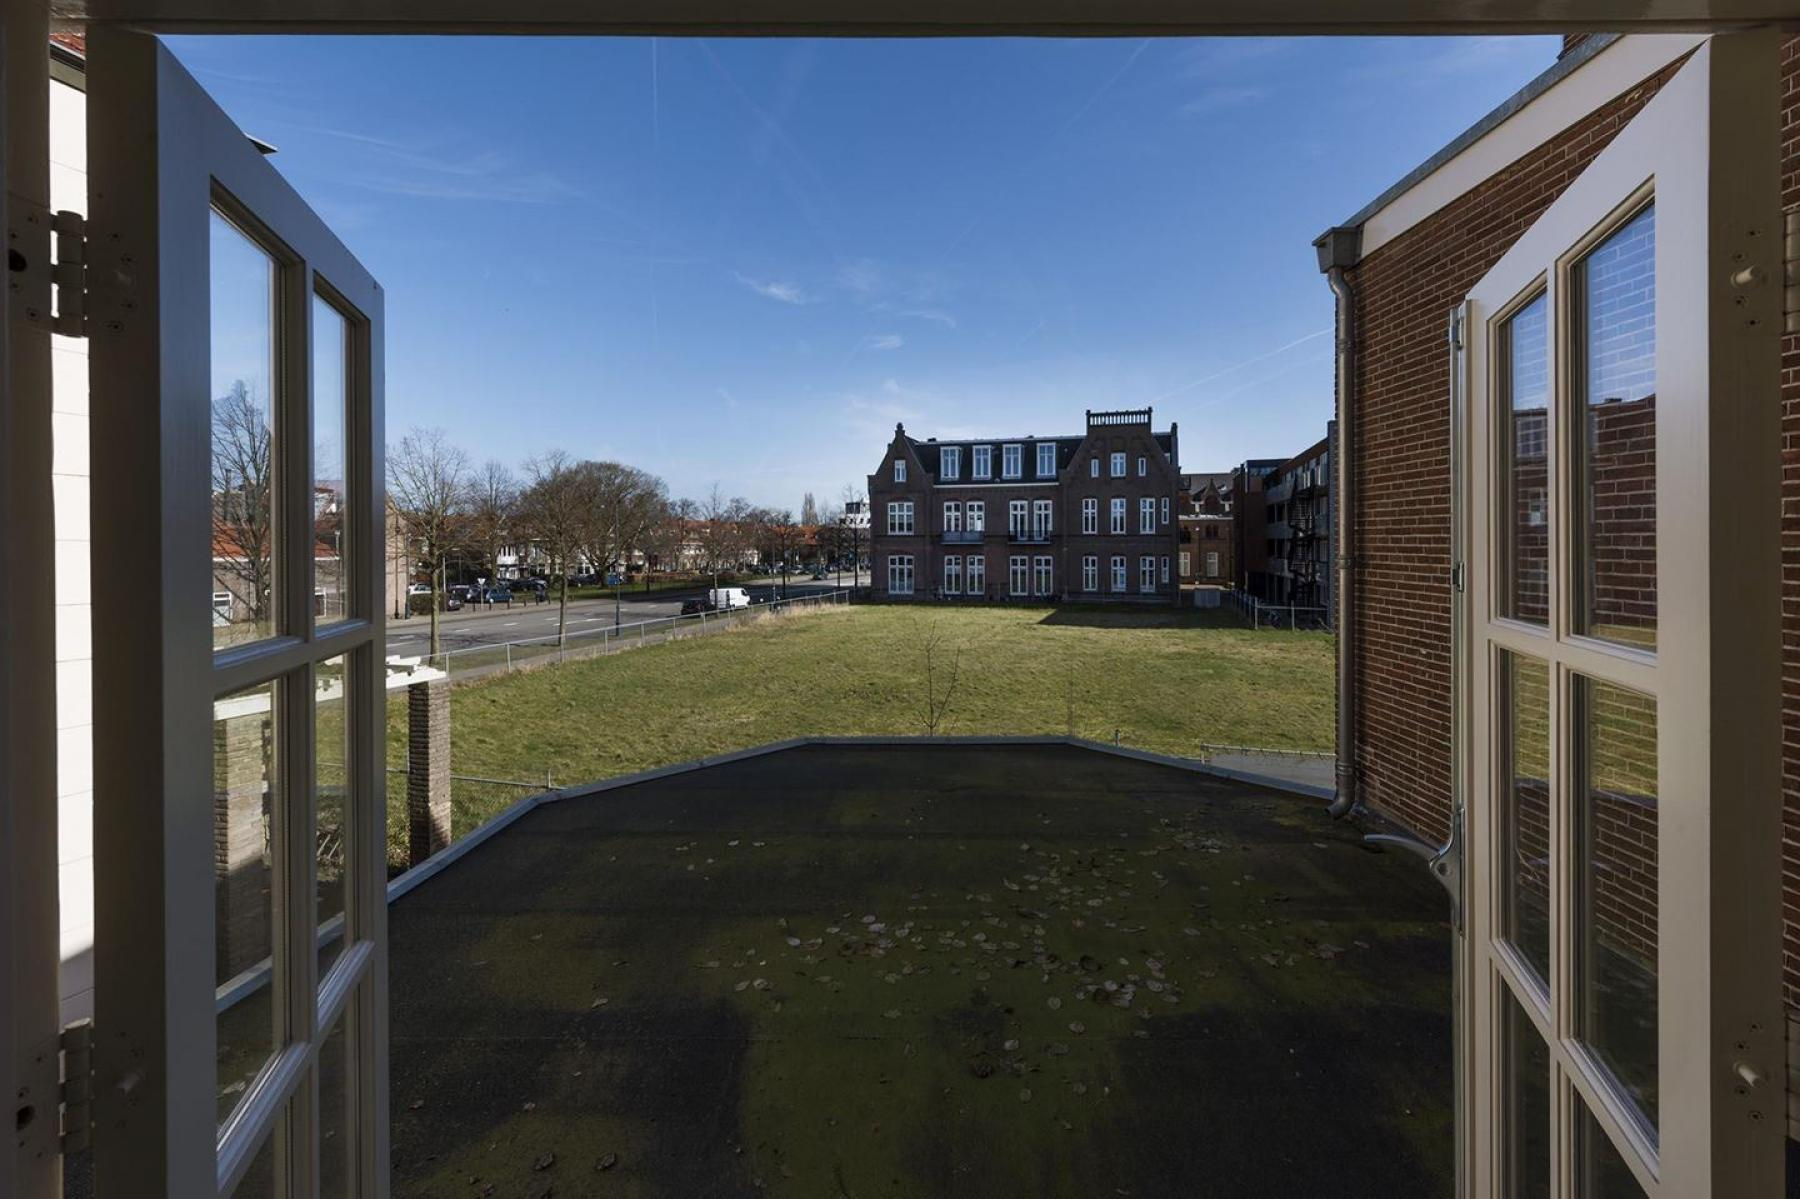 Creative working places for rent in Haarlem